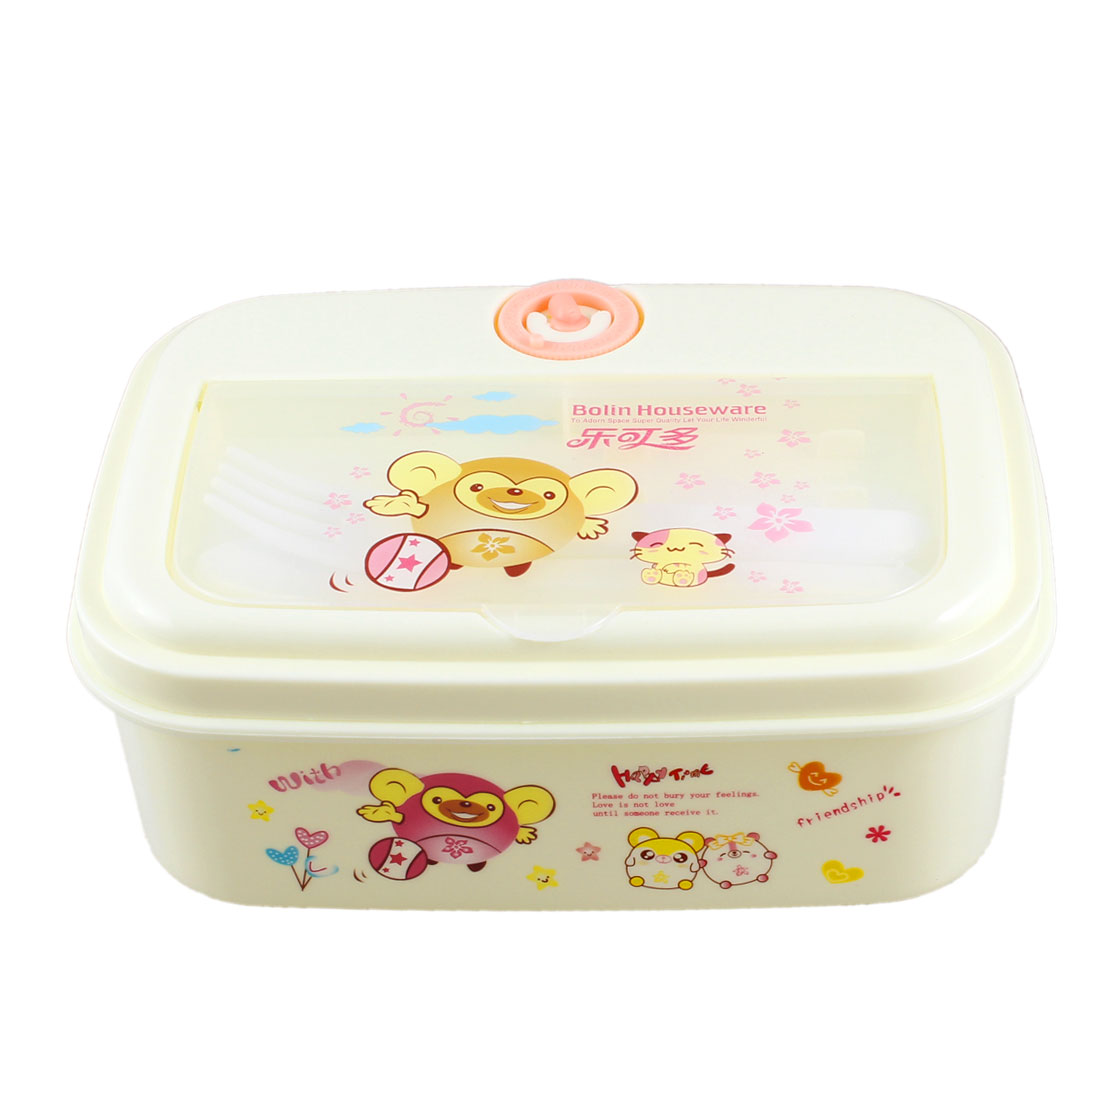 Traveling Cartoon Print Beige Plastic Food Container Holder Lunch Box Case